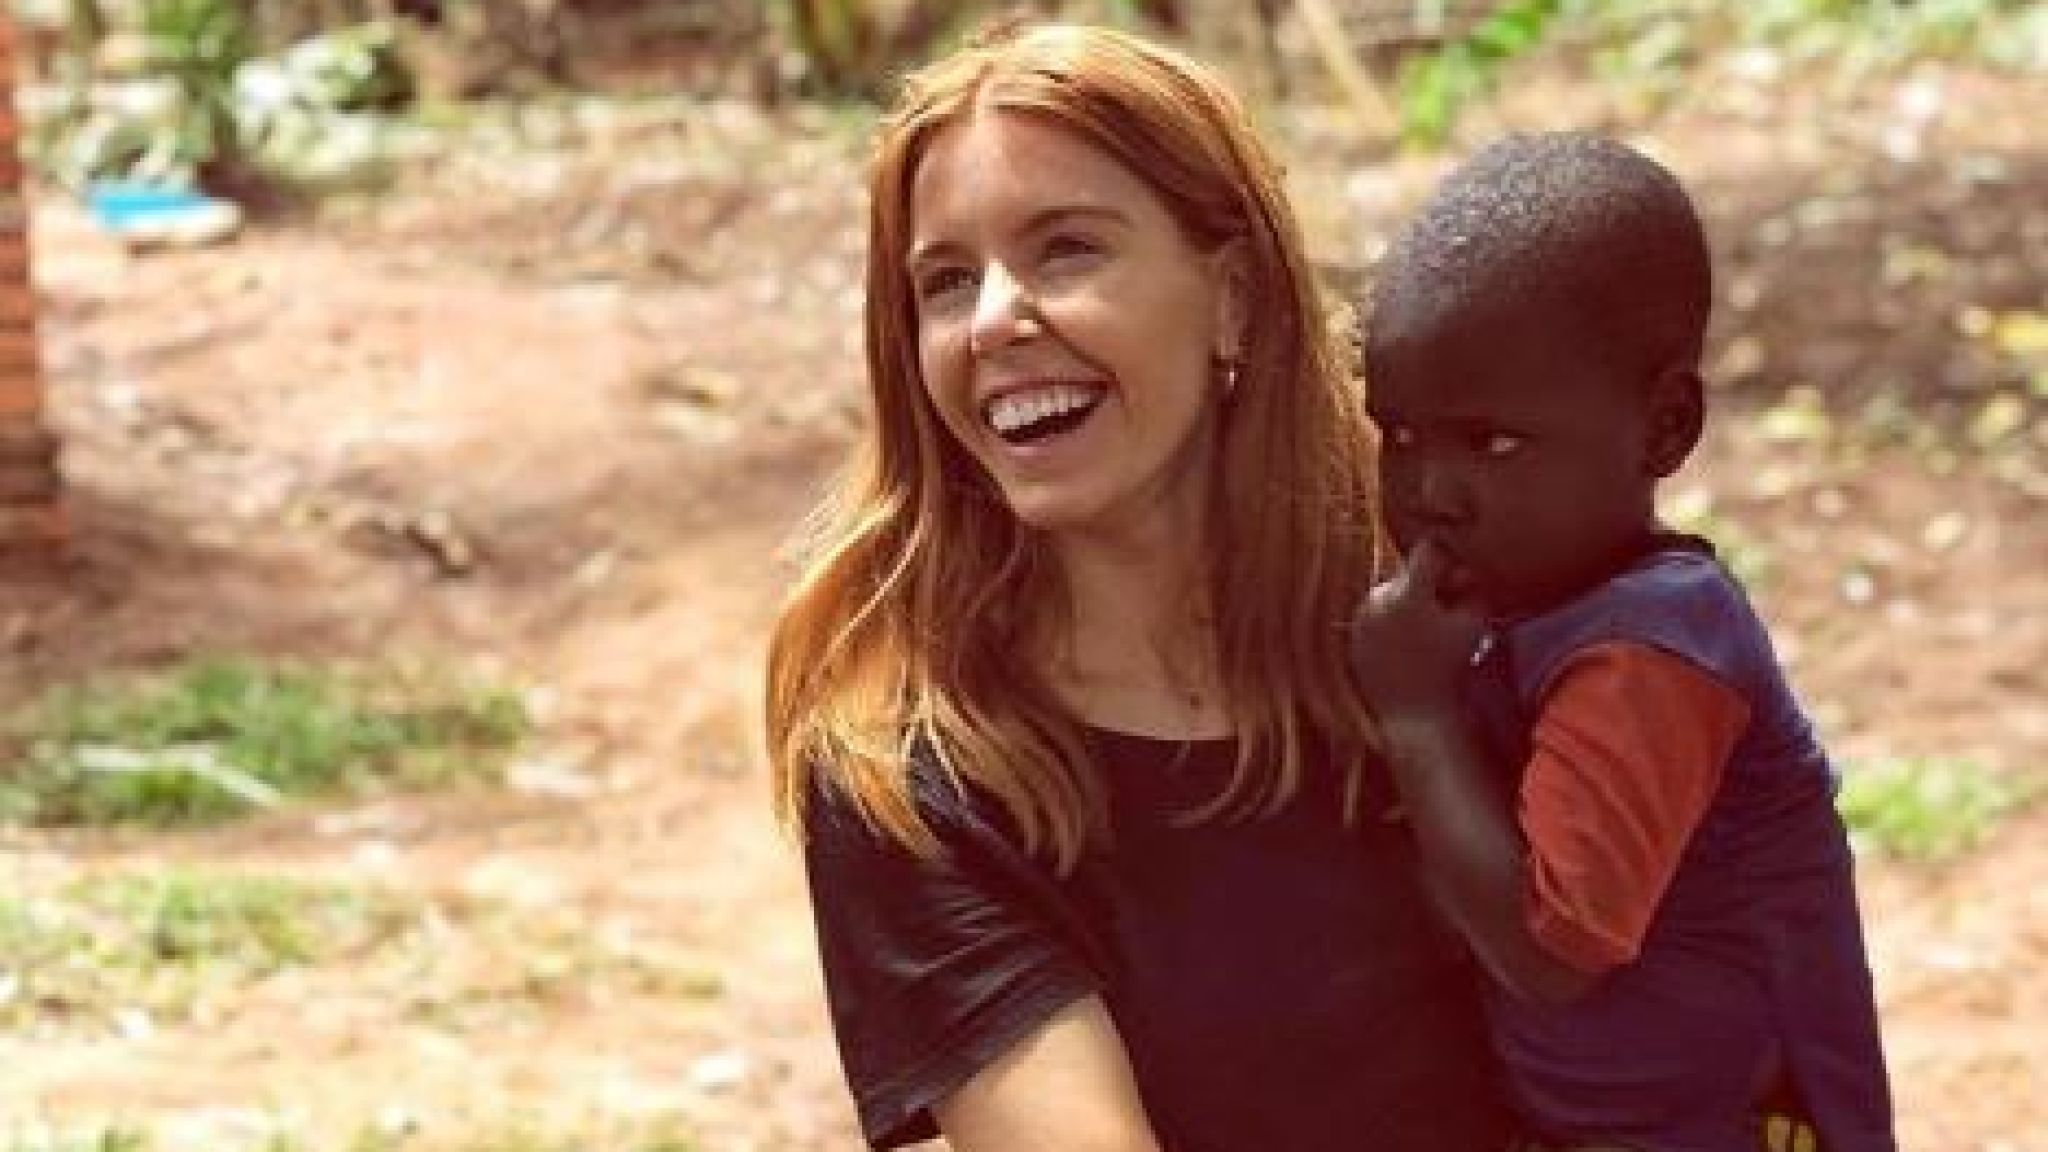 Stacey Dooley posted an image of herself in Africa on Instagram, holding a small child.